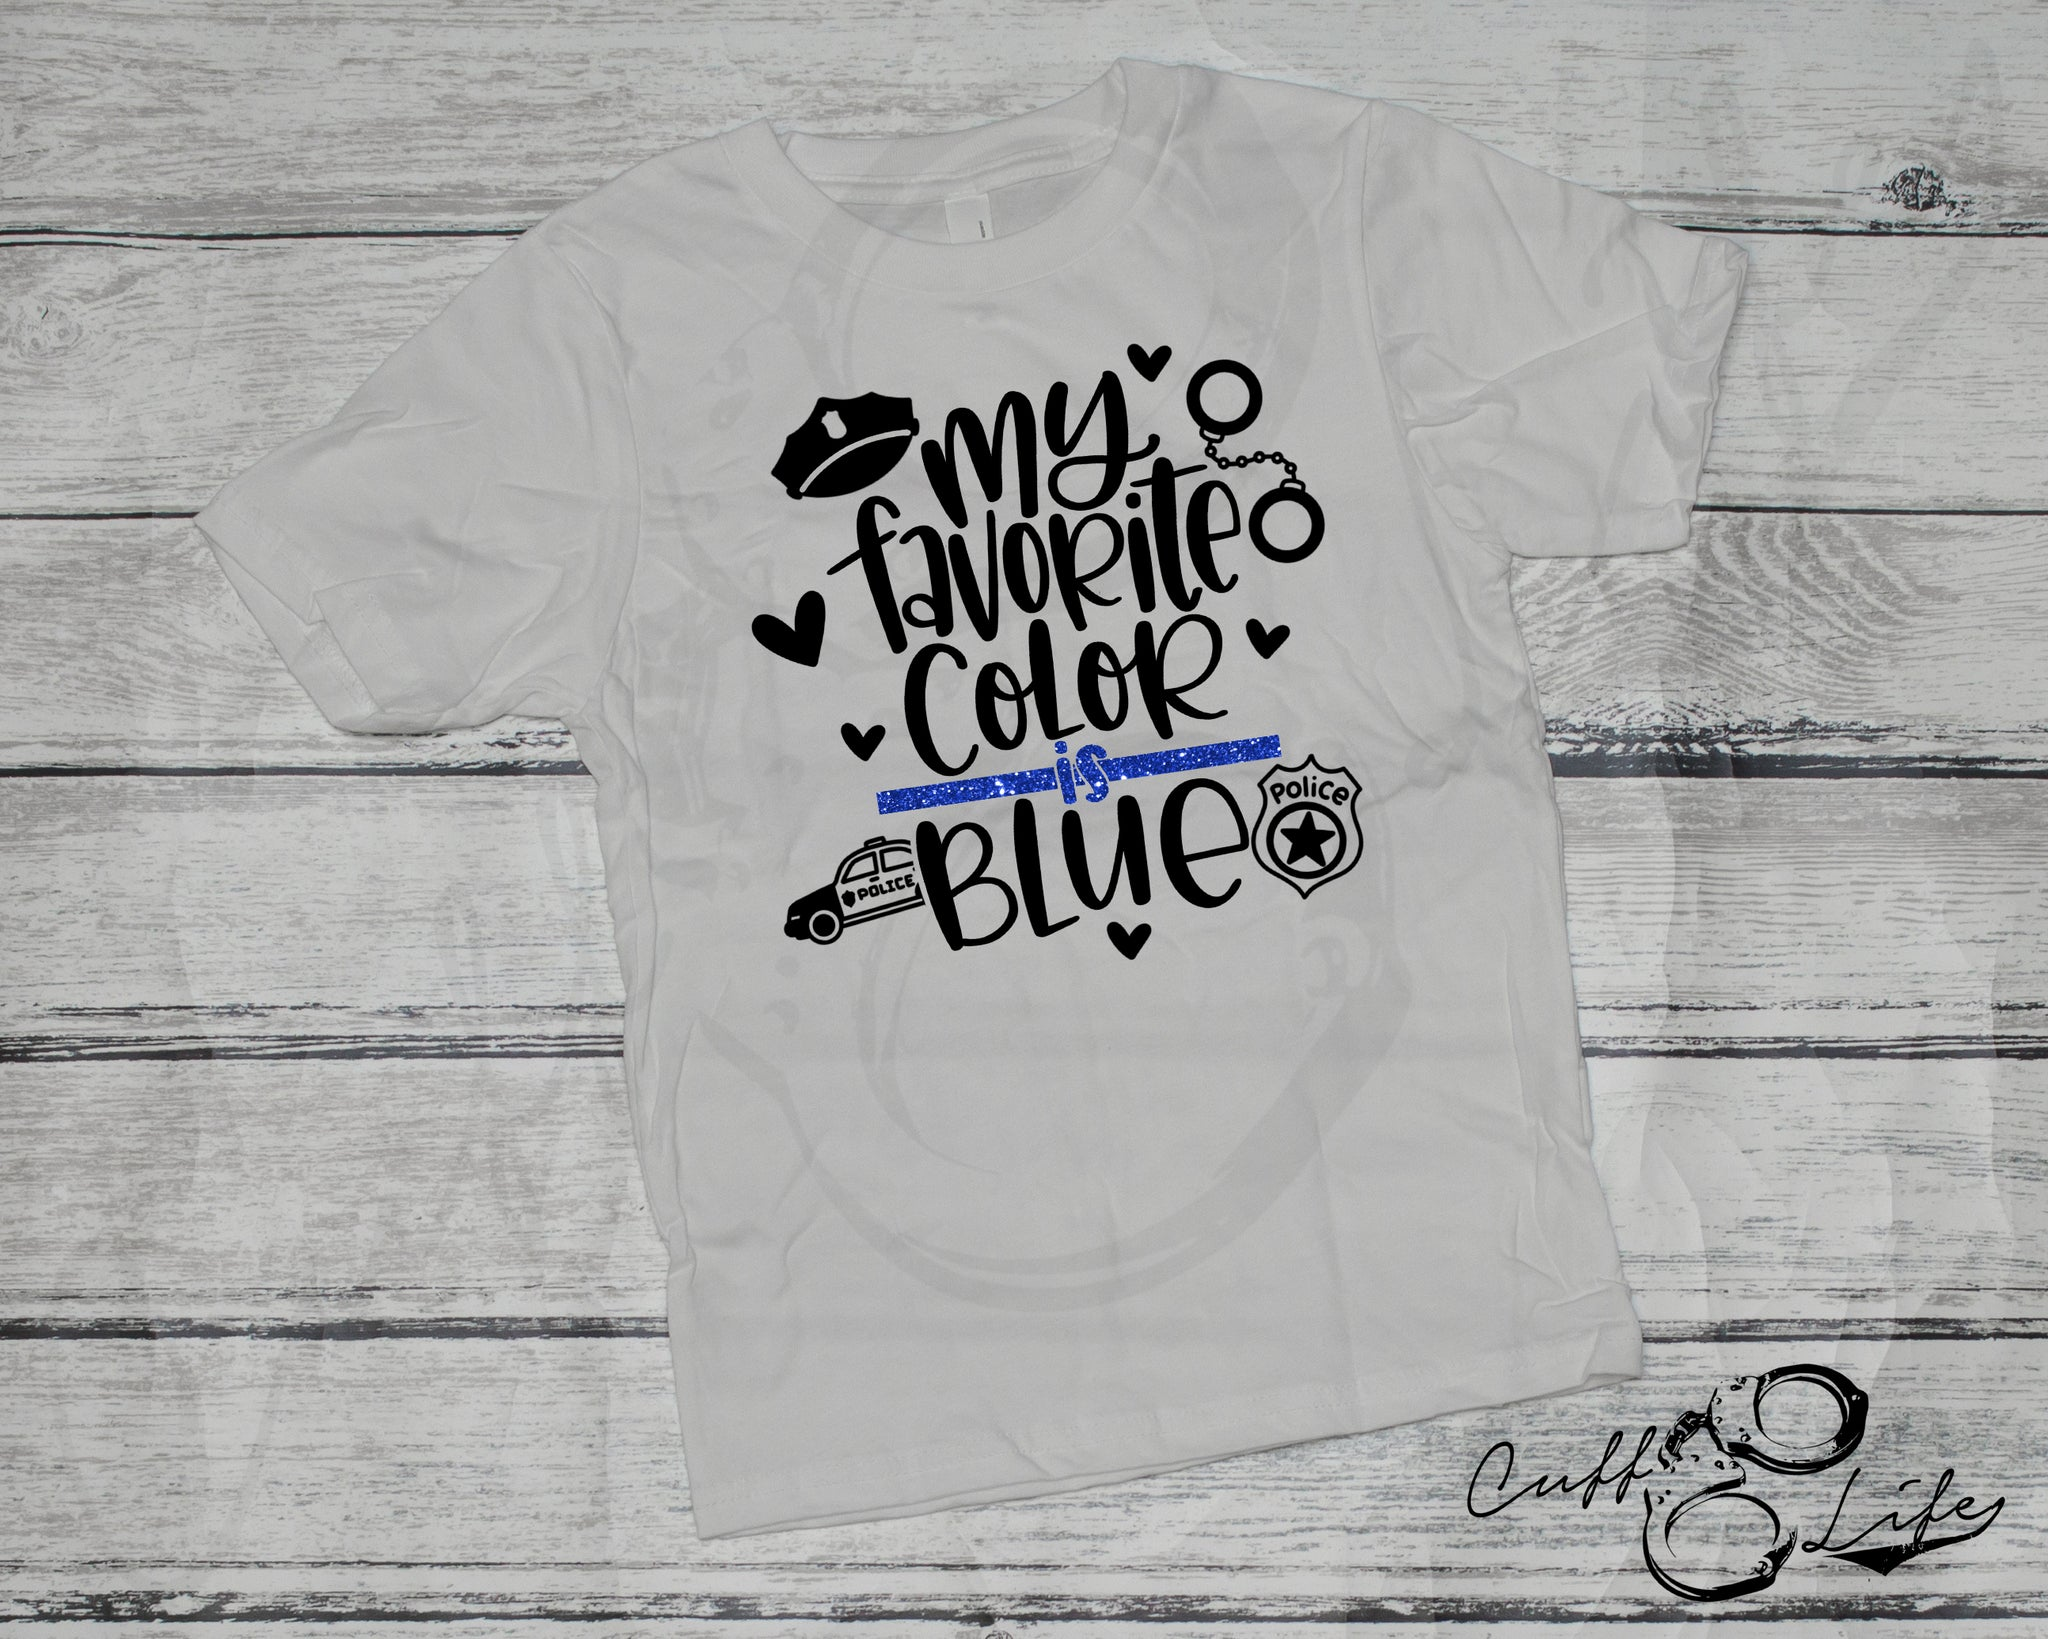 My Favorite Color is Blue - Toddler/Youth T-Shirt